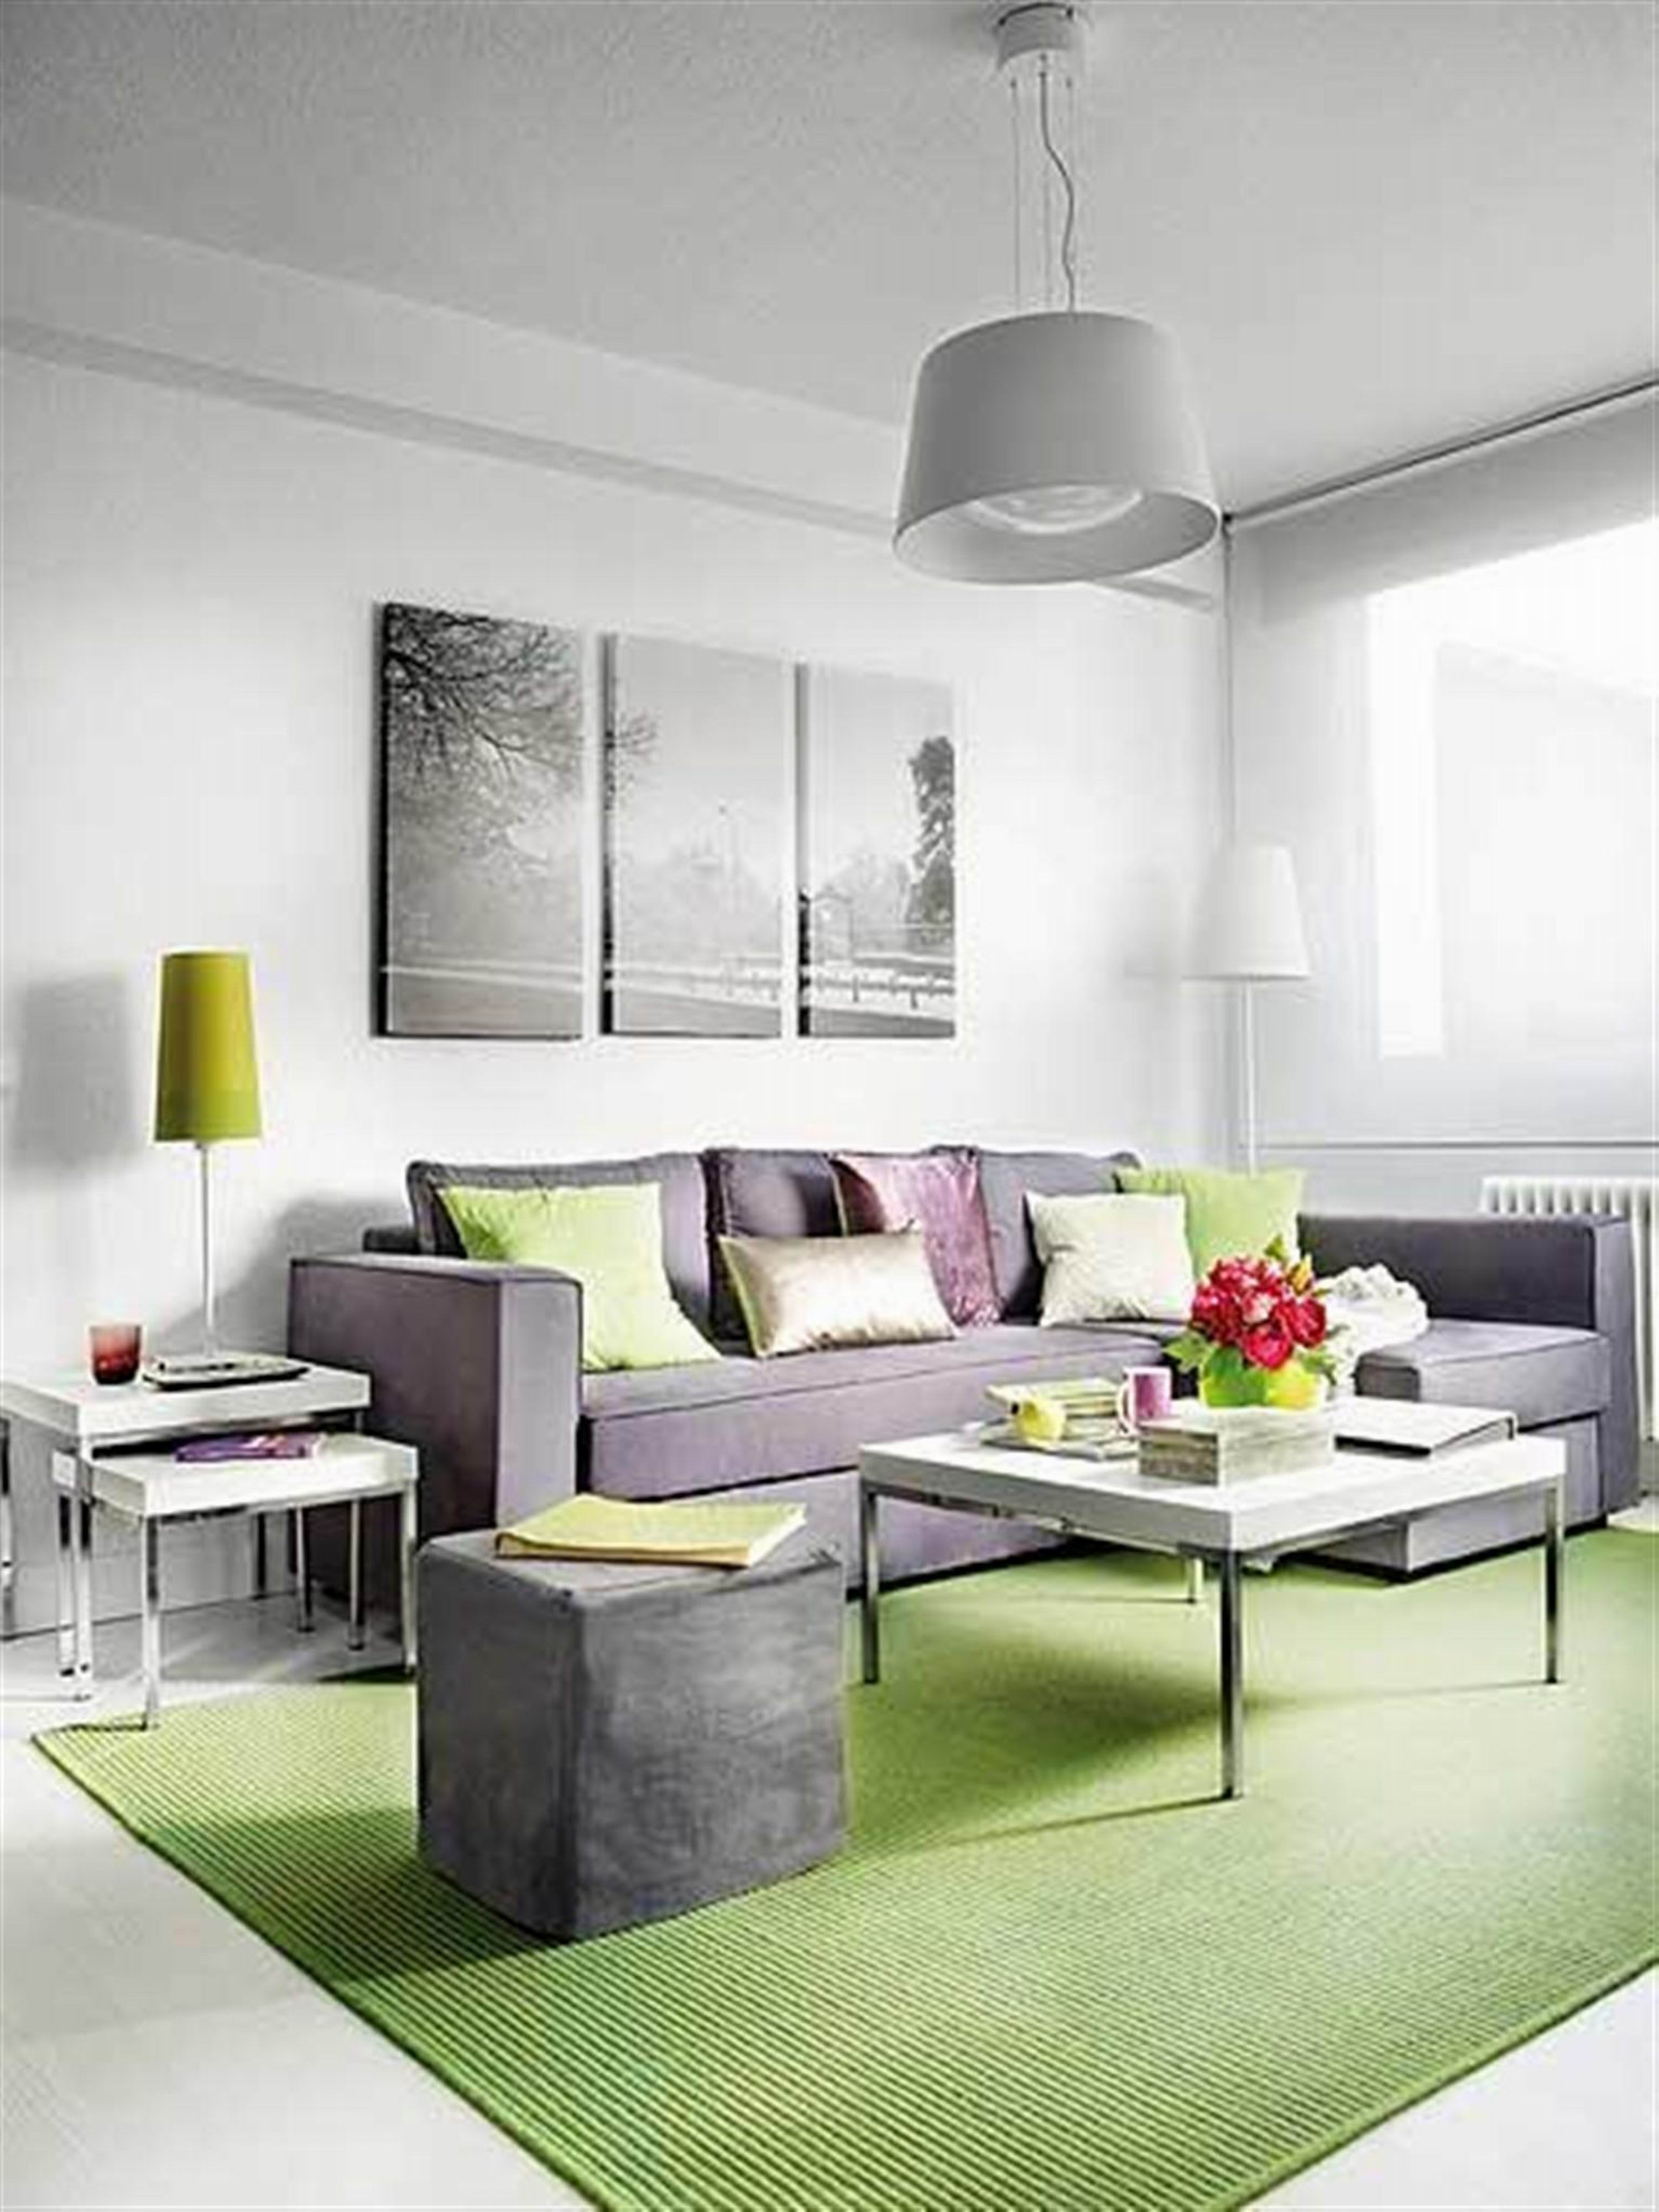 small nature color theme modern simple living room with lime green accent design decorating grey pendant light stylish side table pouffe corner sofa rug wheels spring haven patio